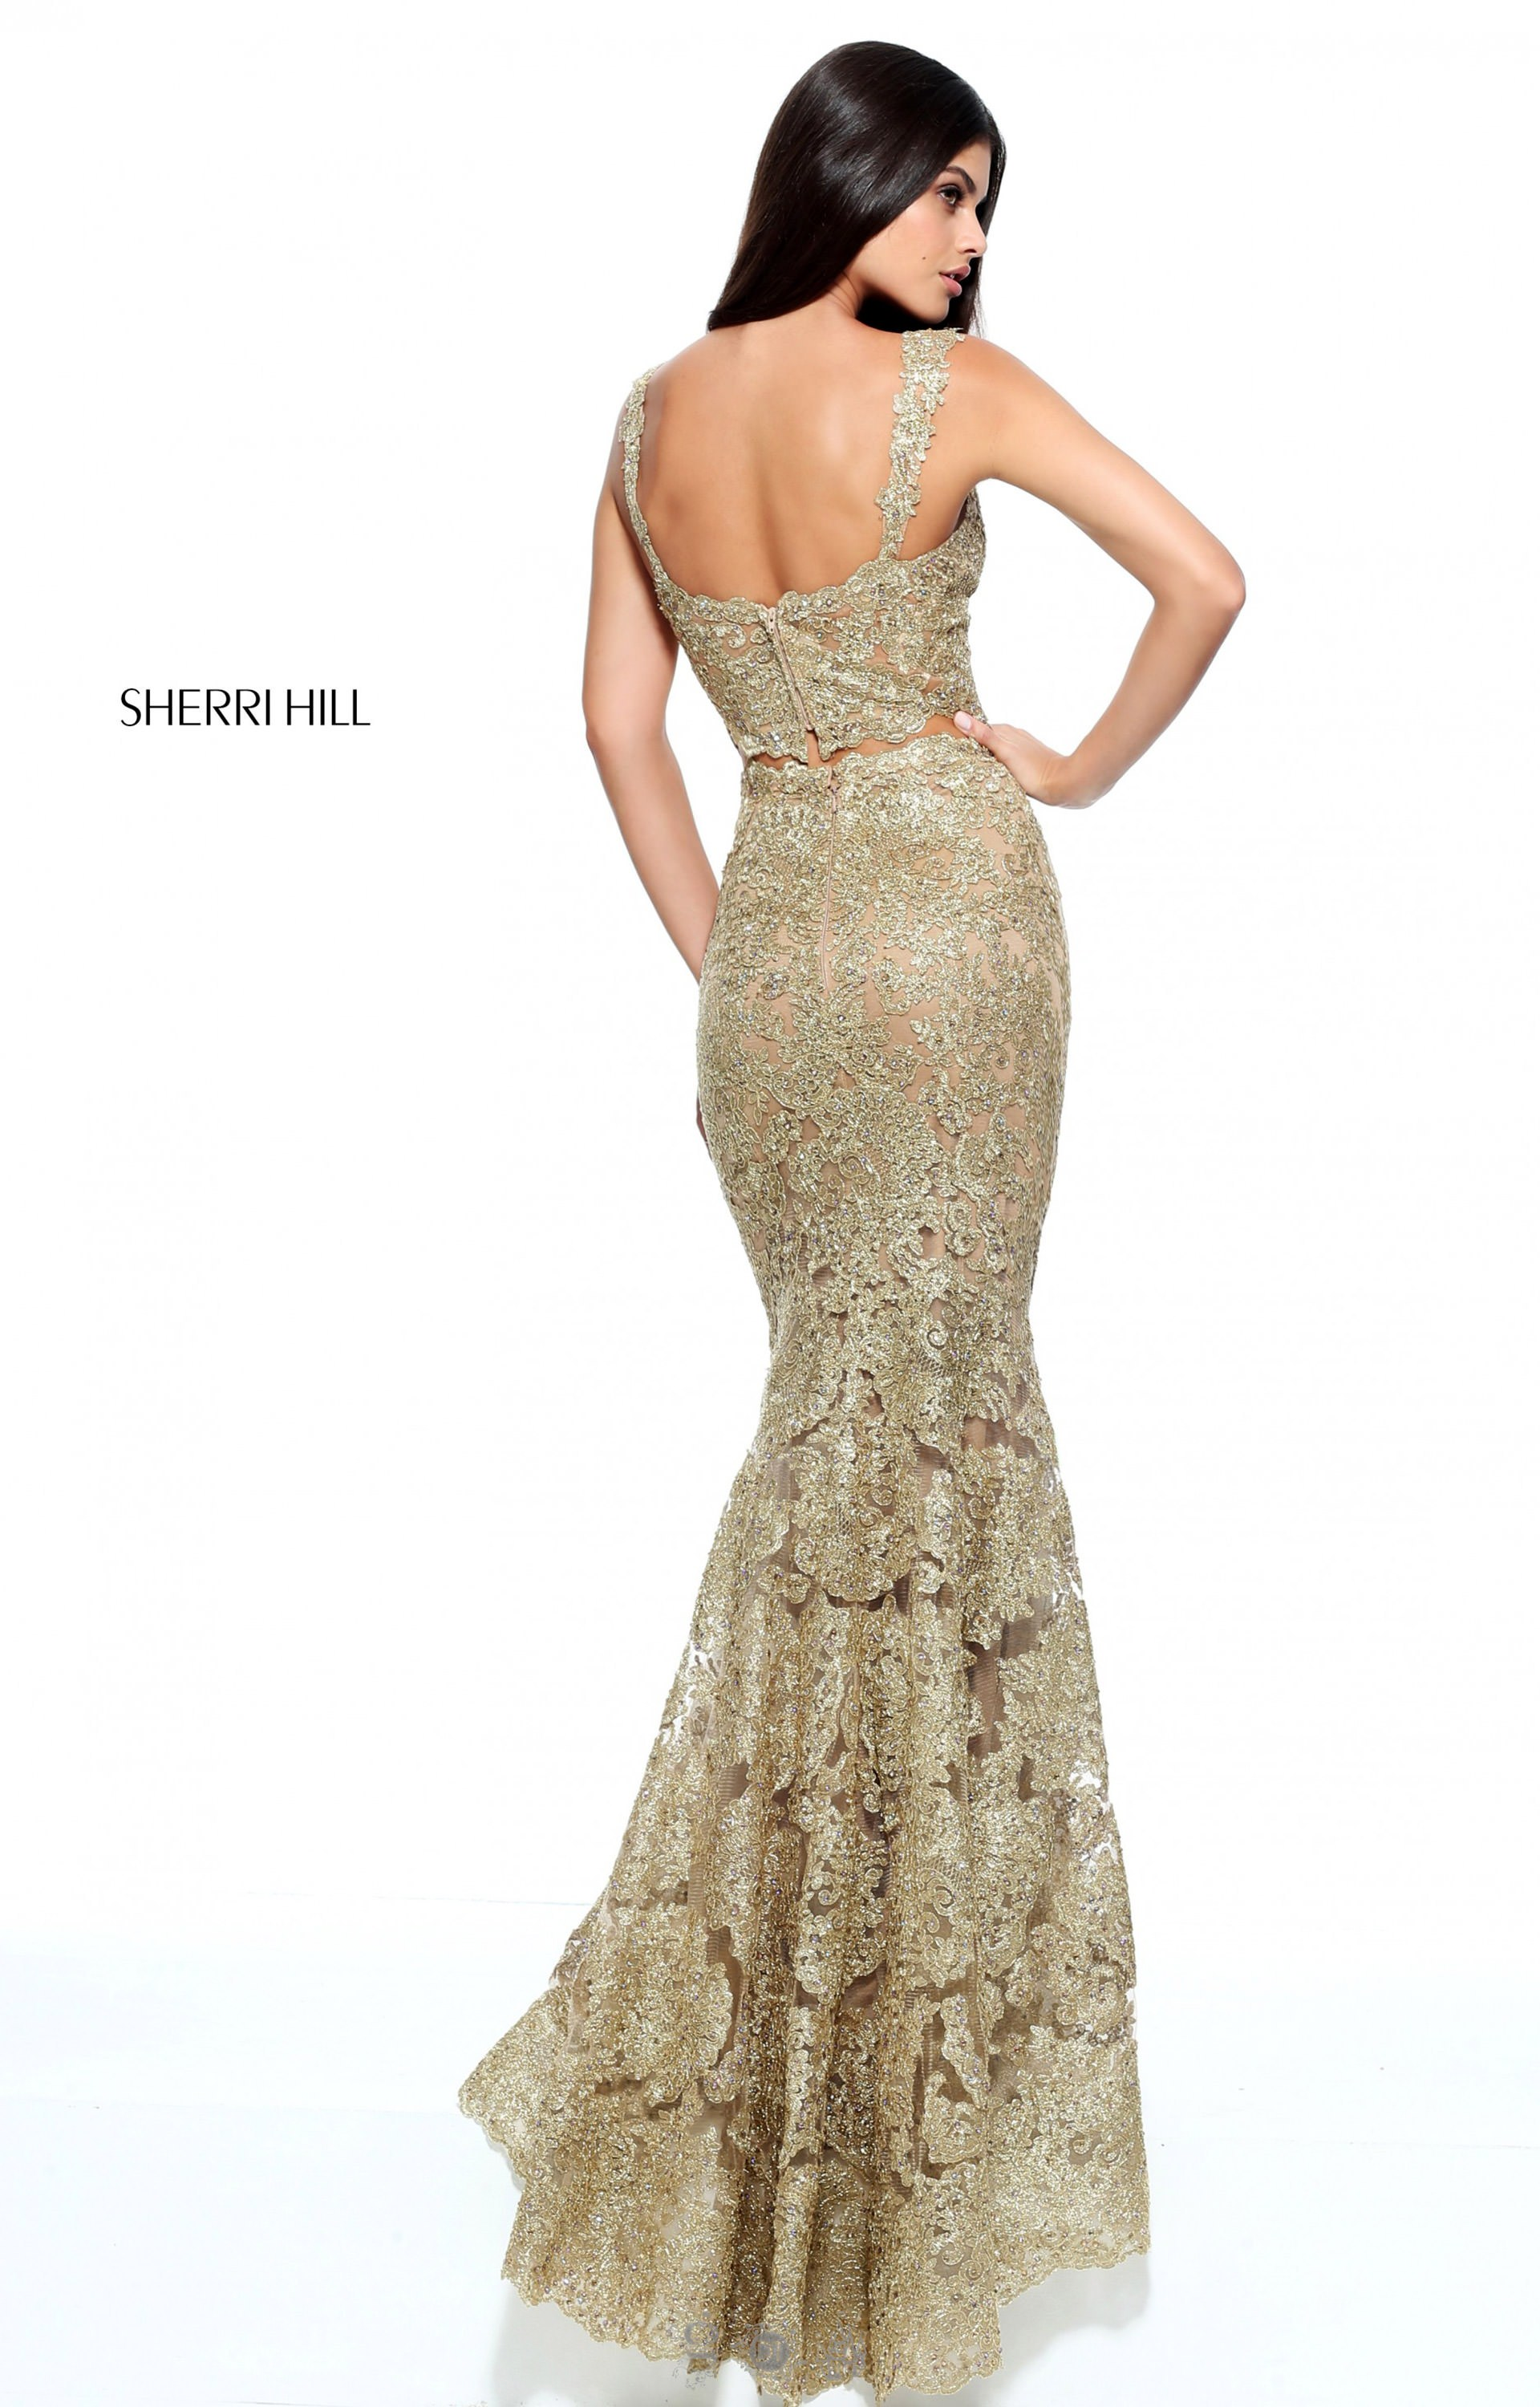 Sherri Hill 51192 Fitted Gold Sherri Hill Two Piece Prom